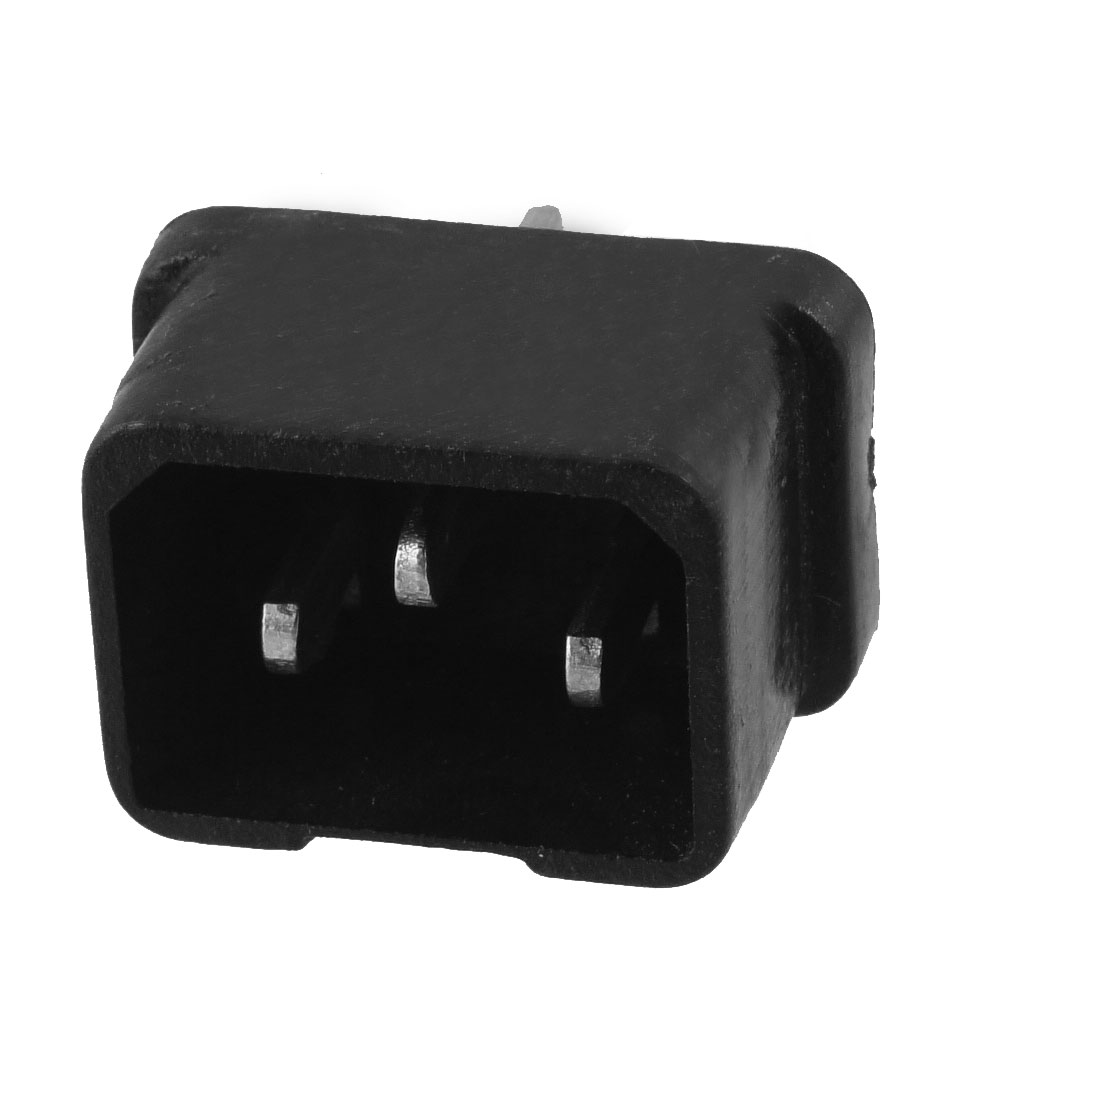 Black C14 Power Adapter Connector for Electric Cooker